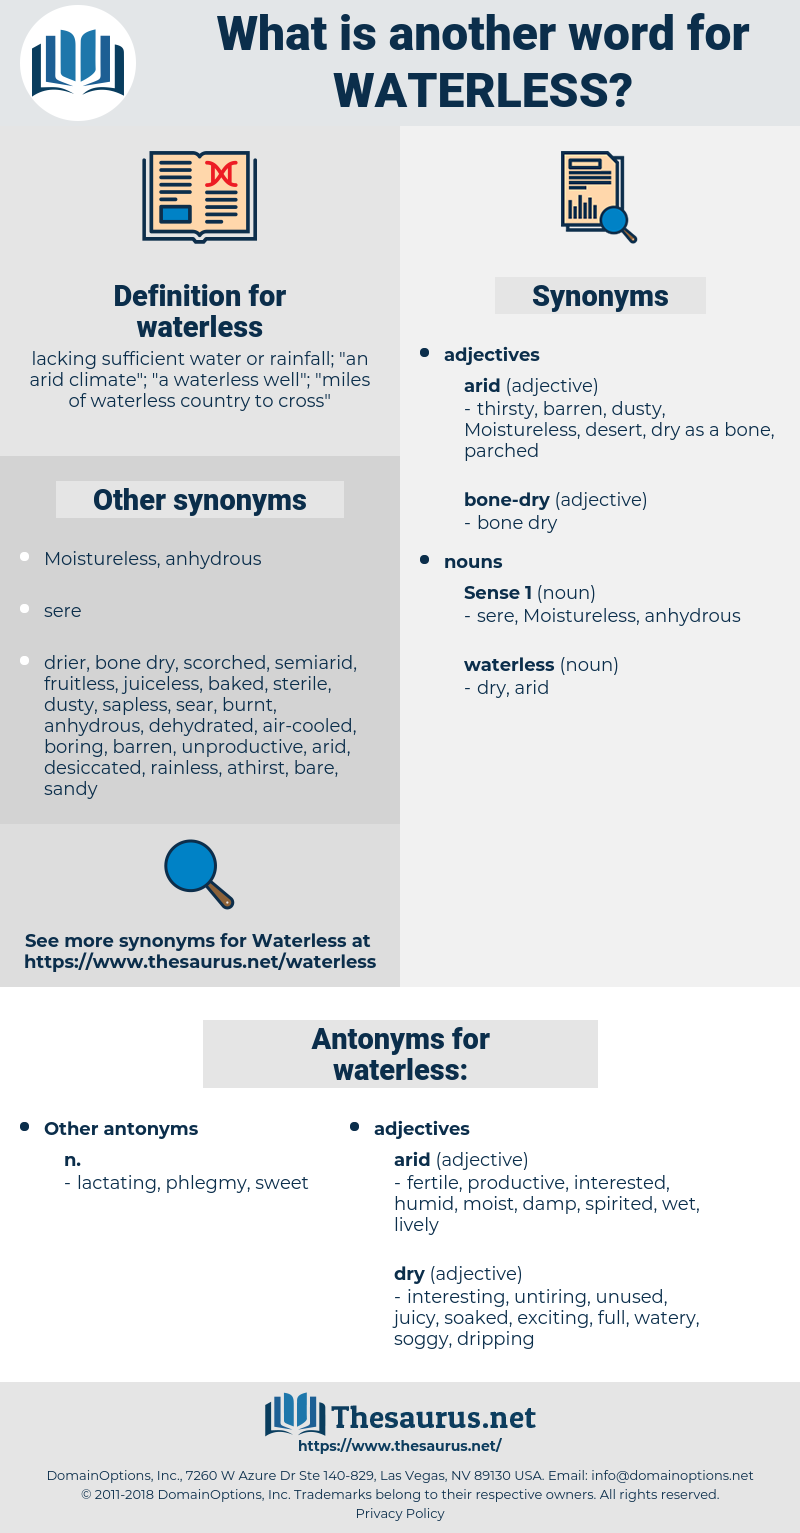 waterless, synonym waterless, another word for waterless, words like waterless, thesaurus waterless